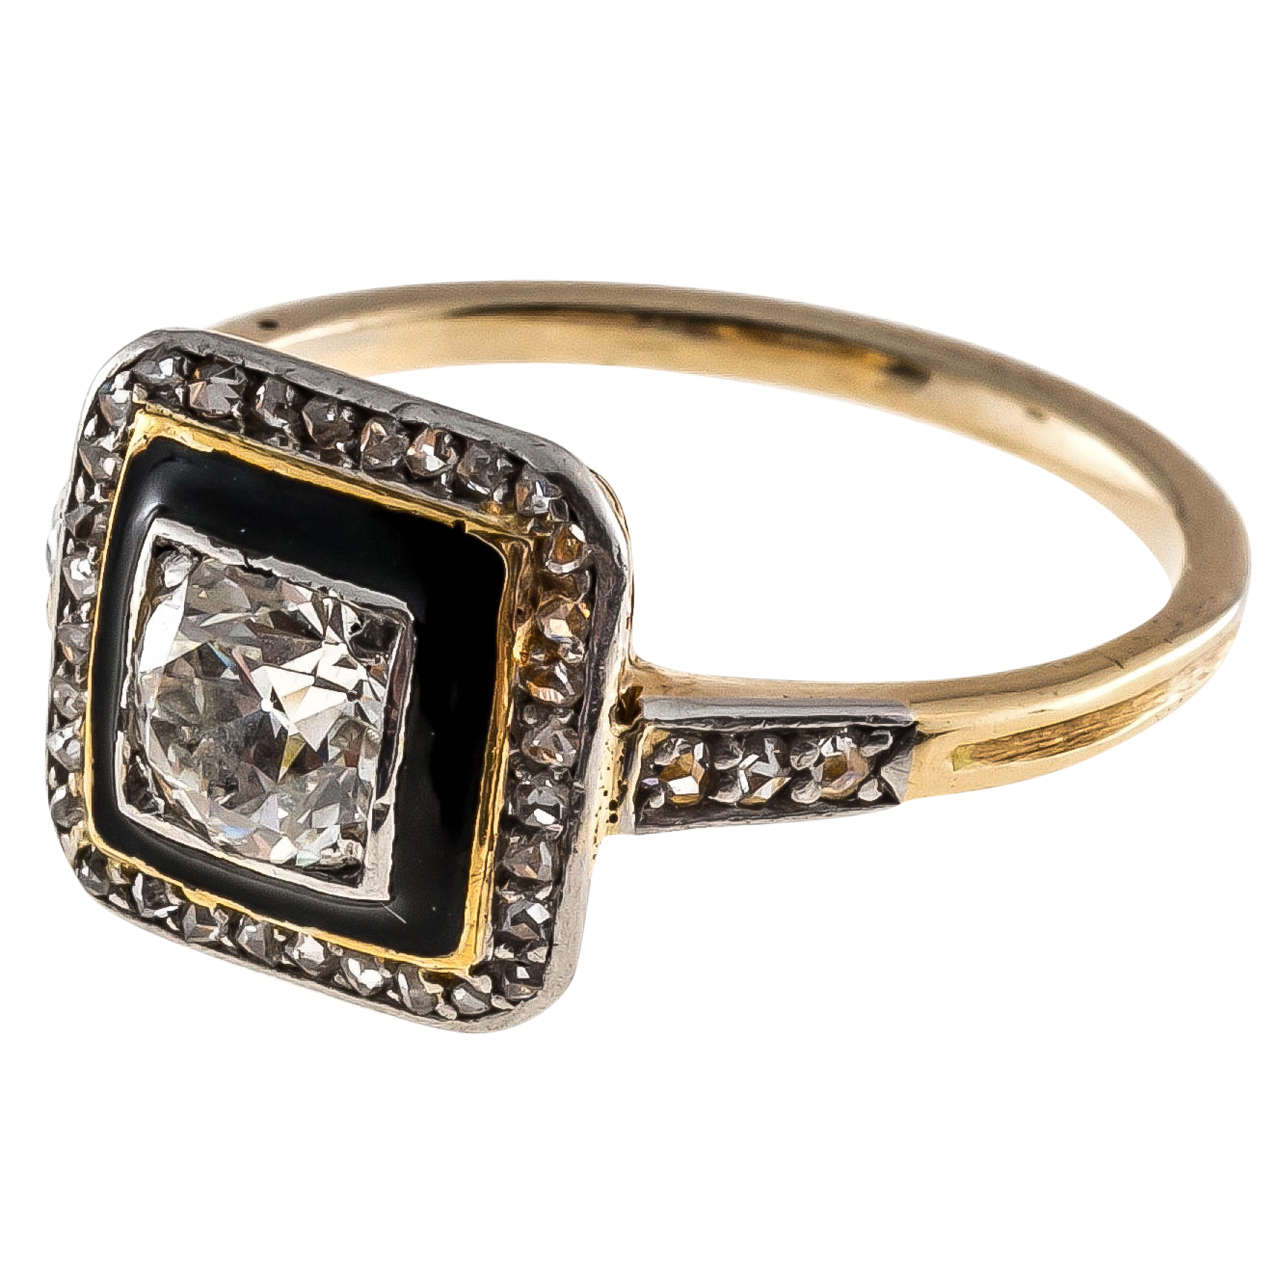 deco black enamel yellow gold platinum ring at